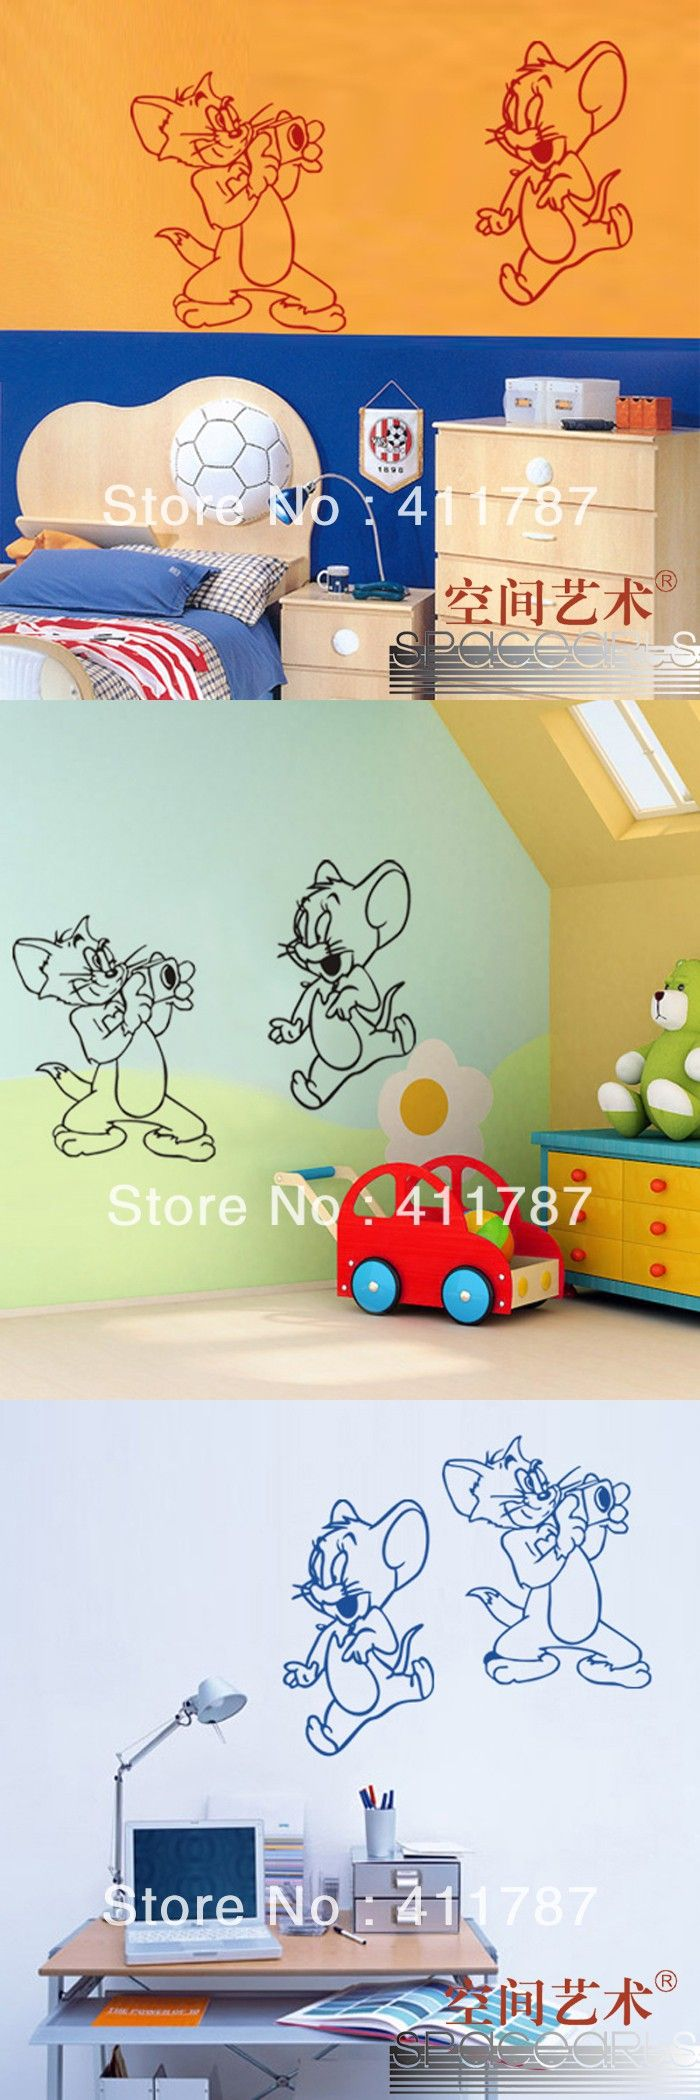 Froggies nursery wall decals by couture d 233 co - Free Shipping Home Decor Beautiful Cute Tom And Jerry Pattern Kids Bedroom Wall Stickers Wall Decals